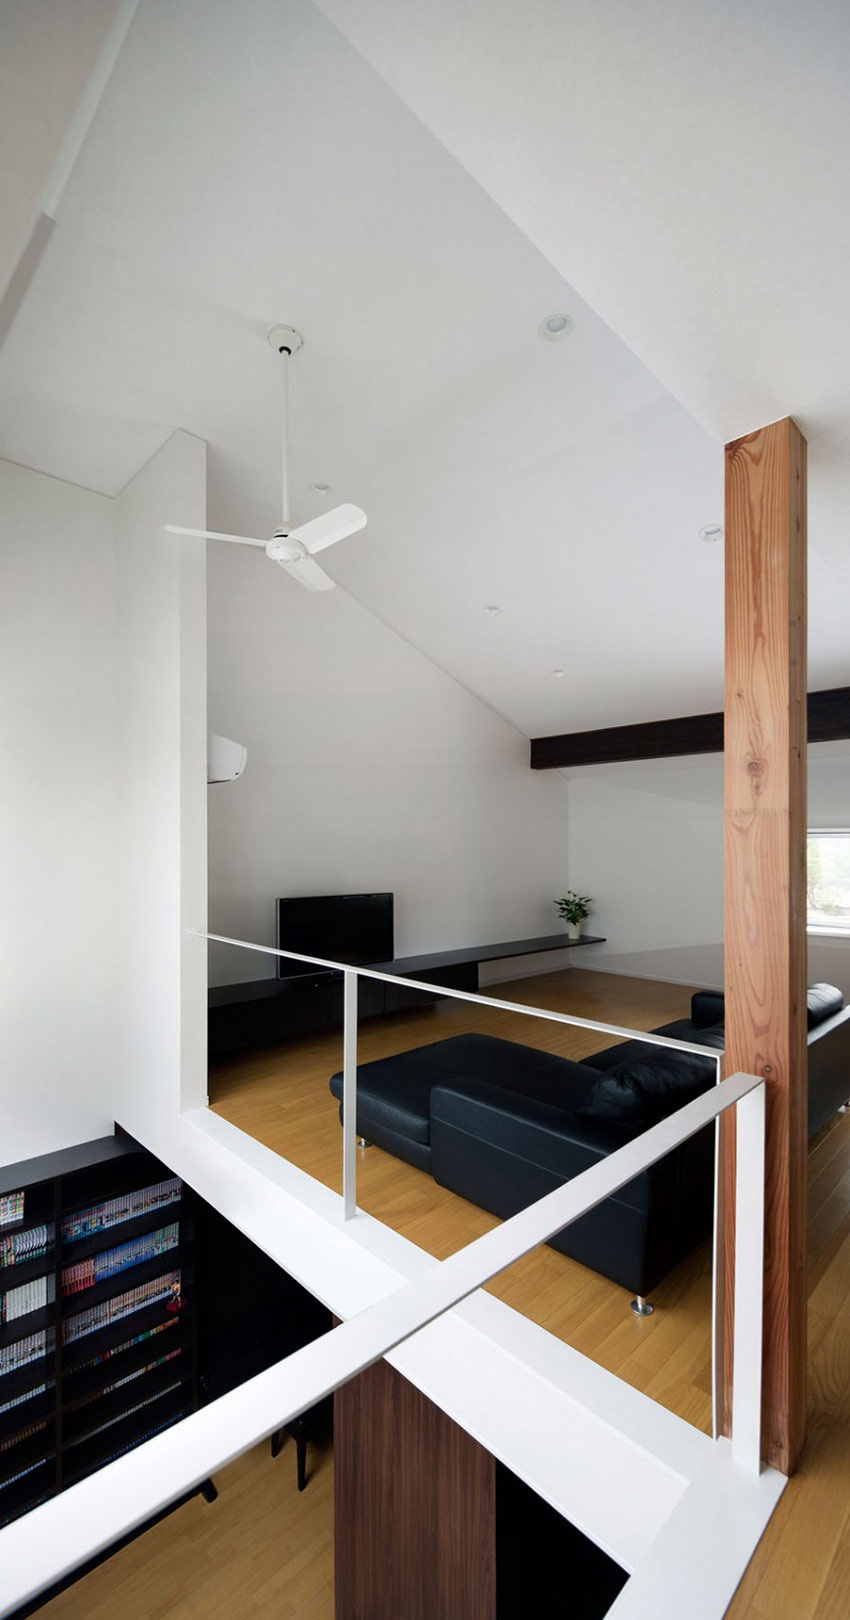 Living Space, Wooden Flooring, Black Sofa, Hansha Reflection House, Nagoya, Japan